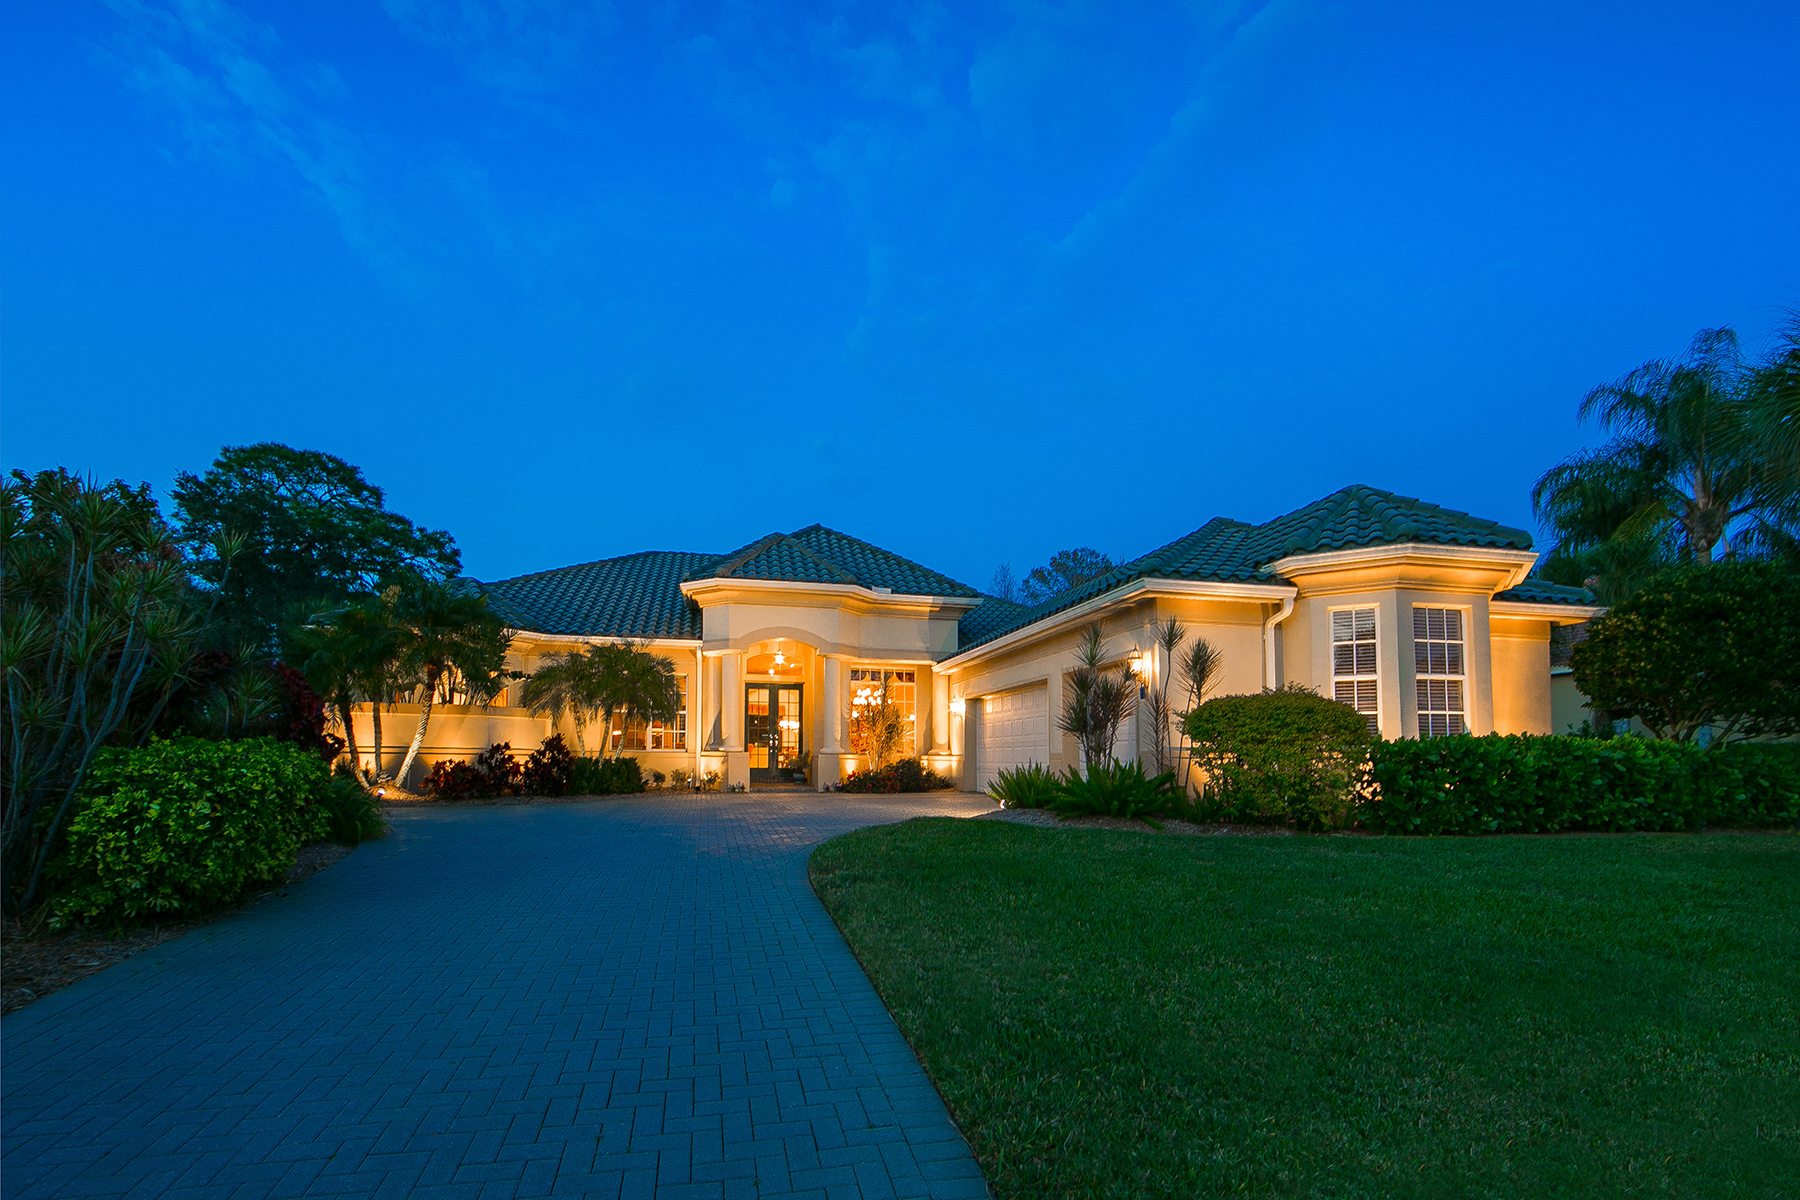 Single Family Homes for Sale at 22 Boca Royale Blvd Englewood, Florida 34223 United States